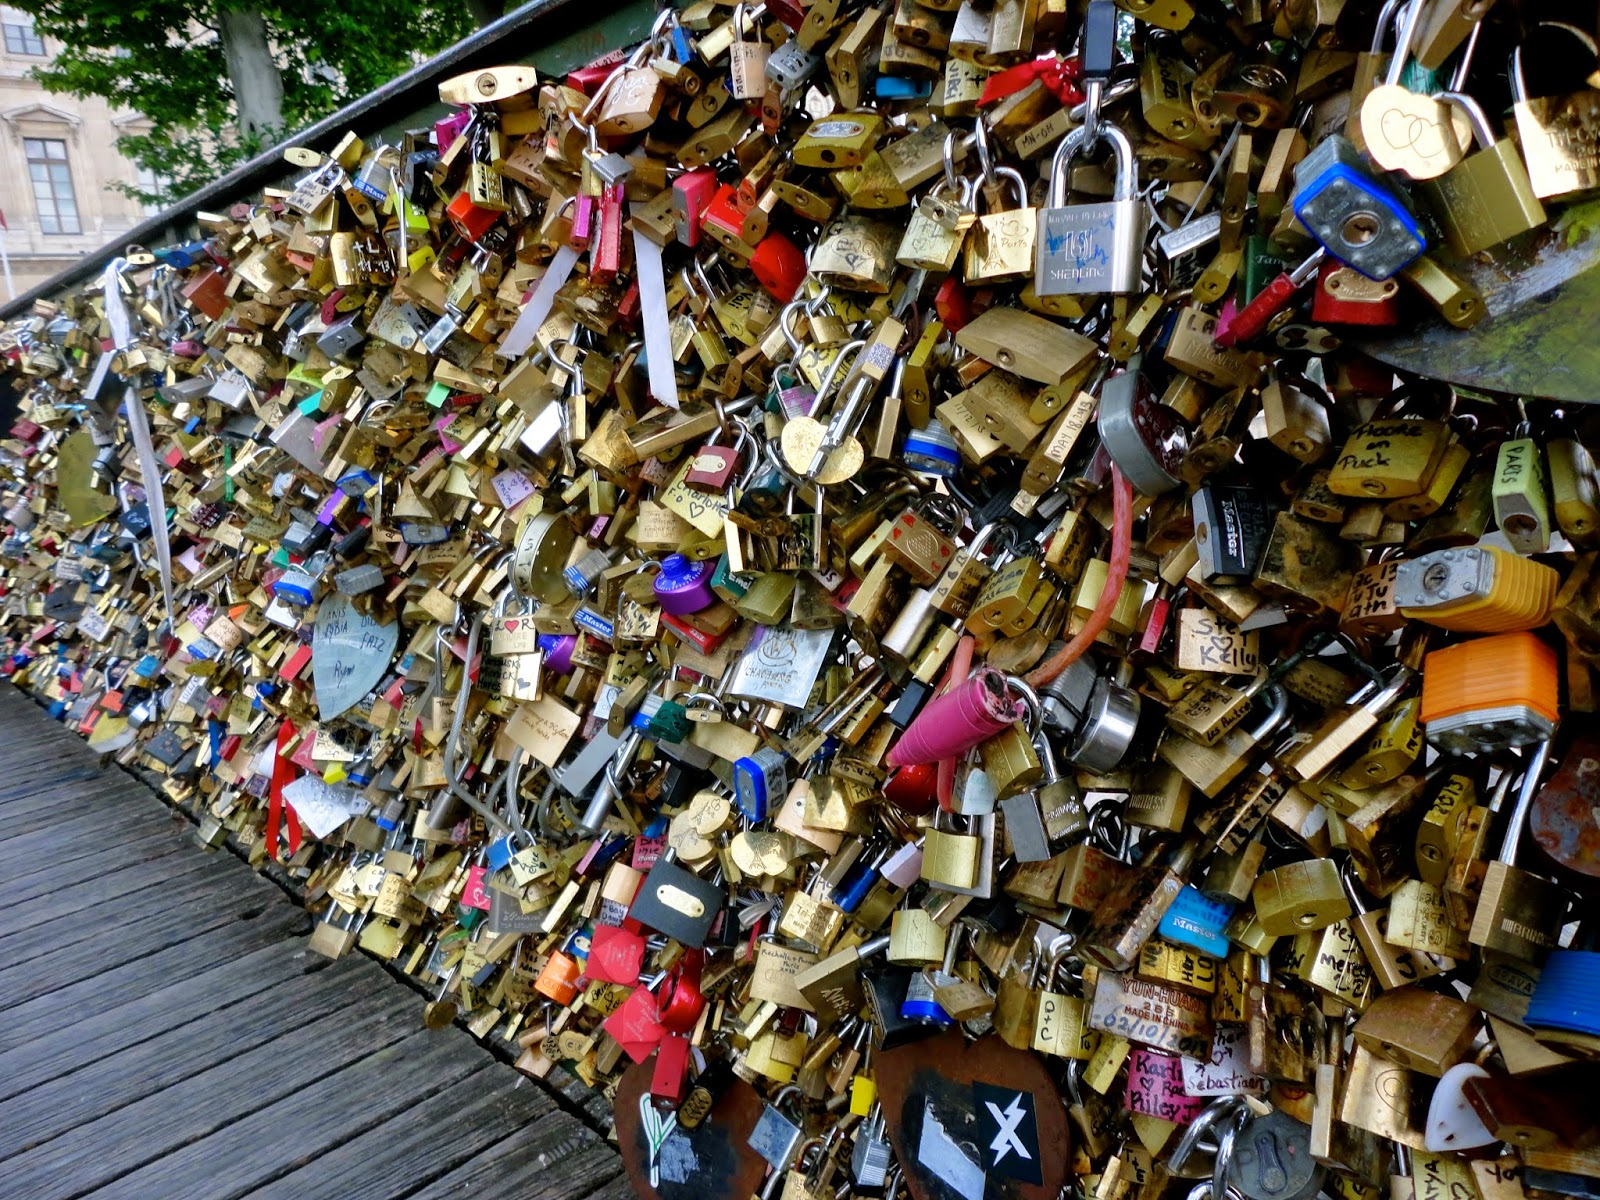 Locks of love bridge, Paris